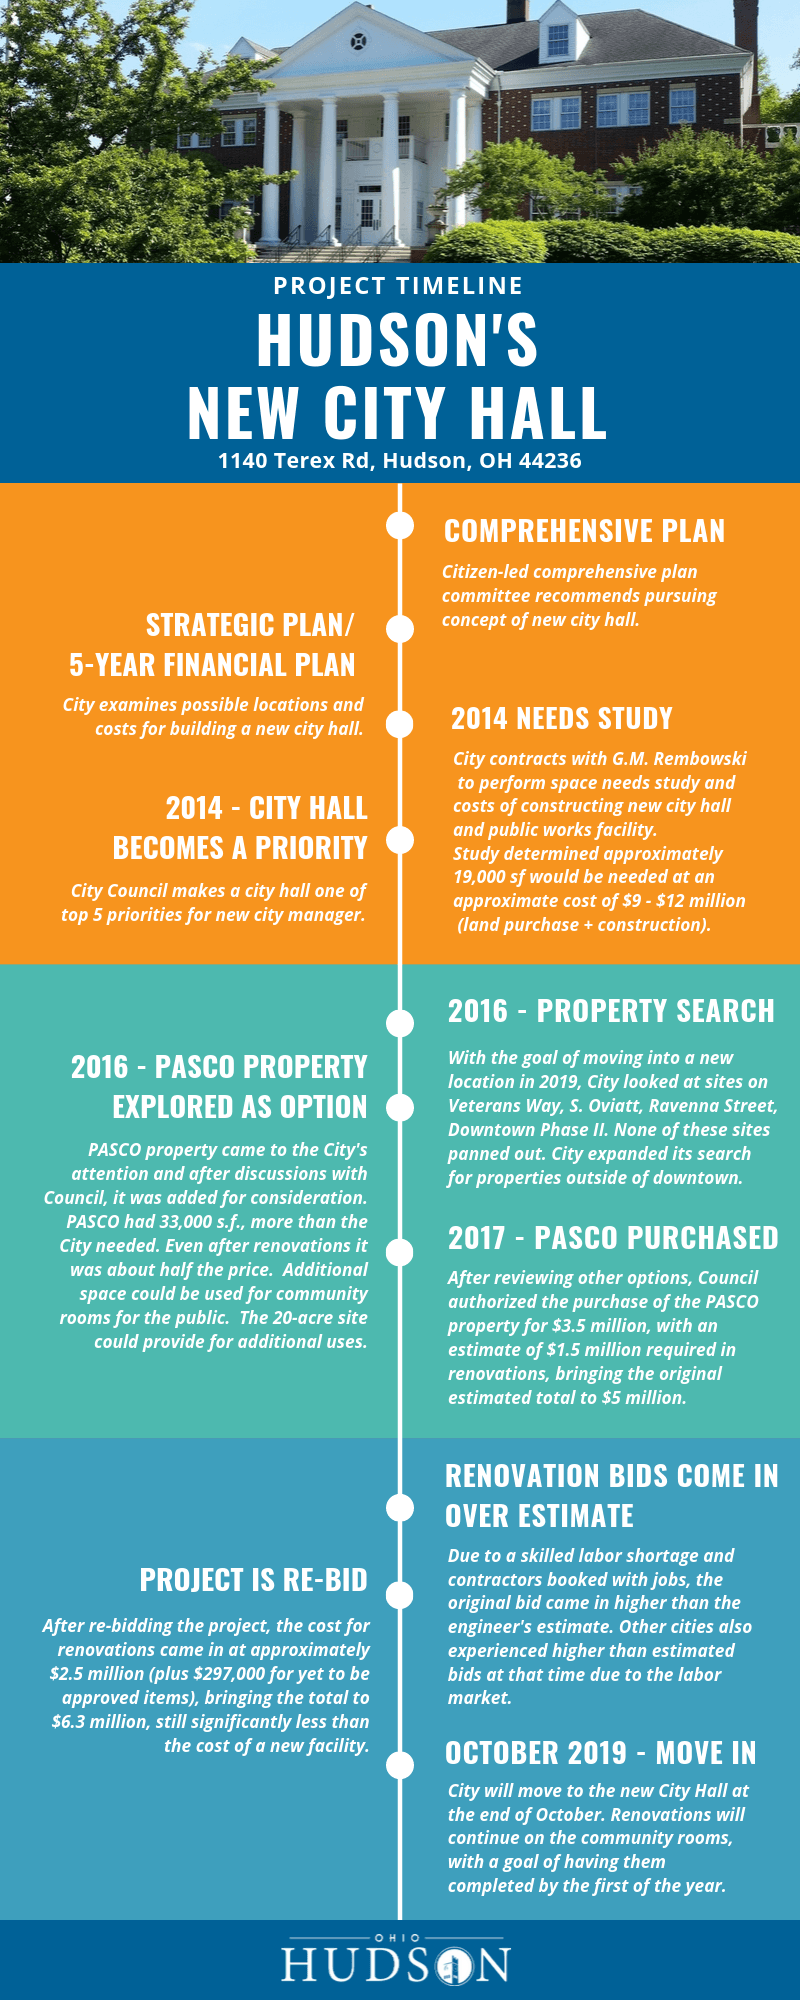 CIty Hall Timeline Infographic